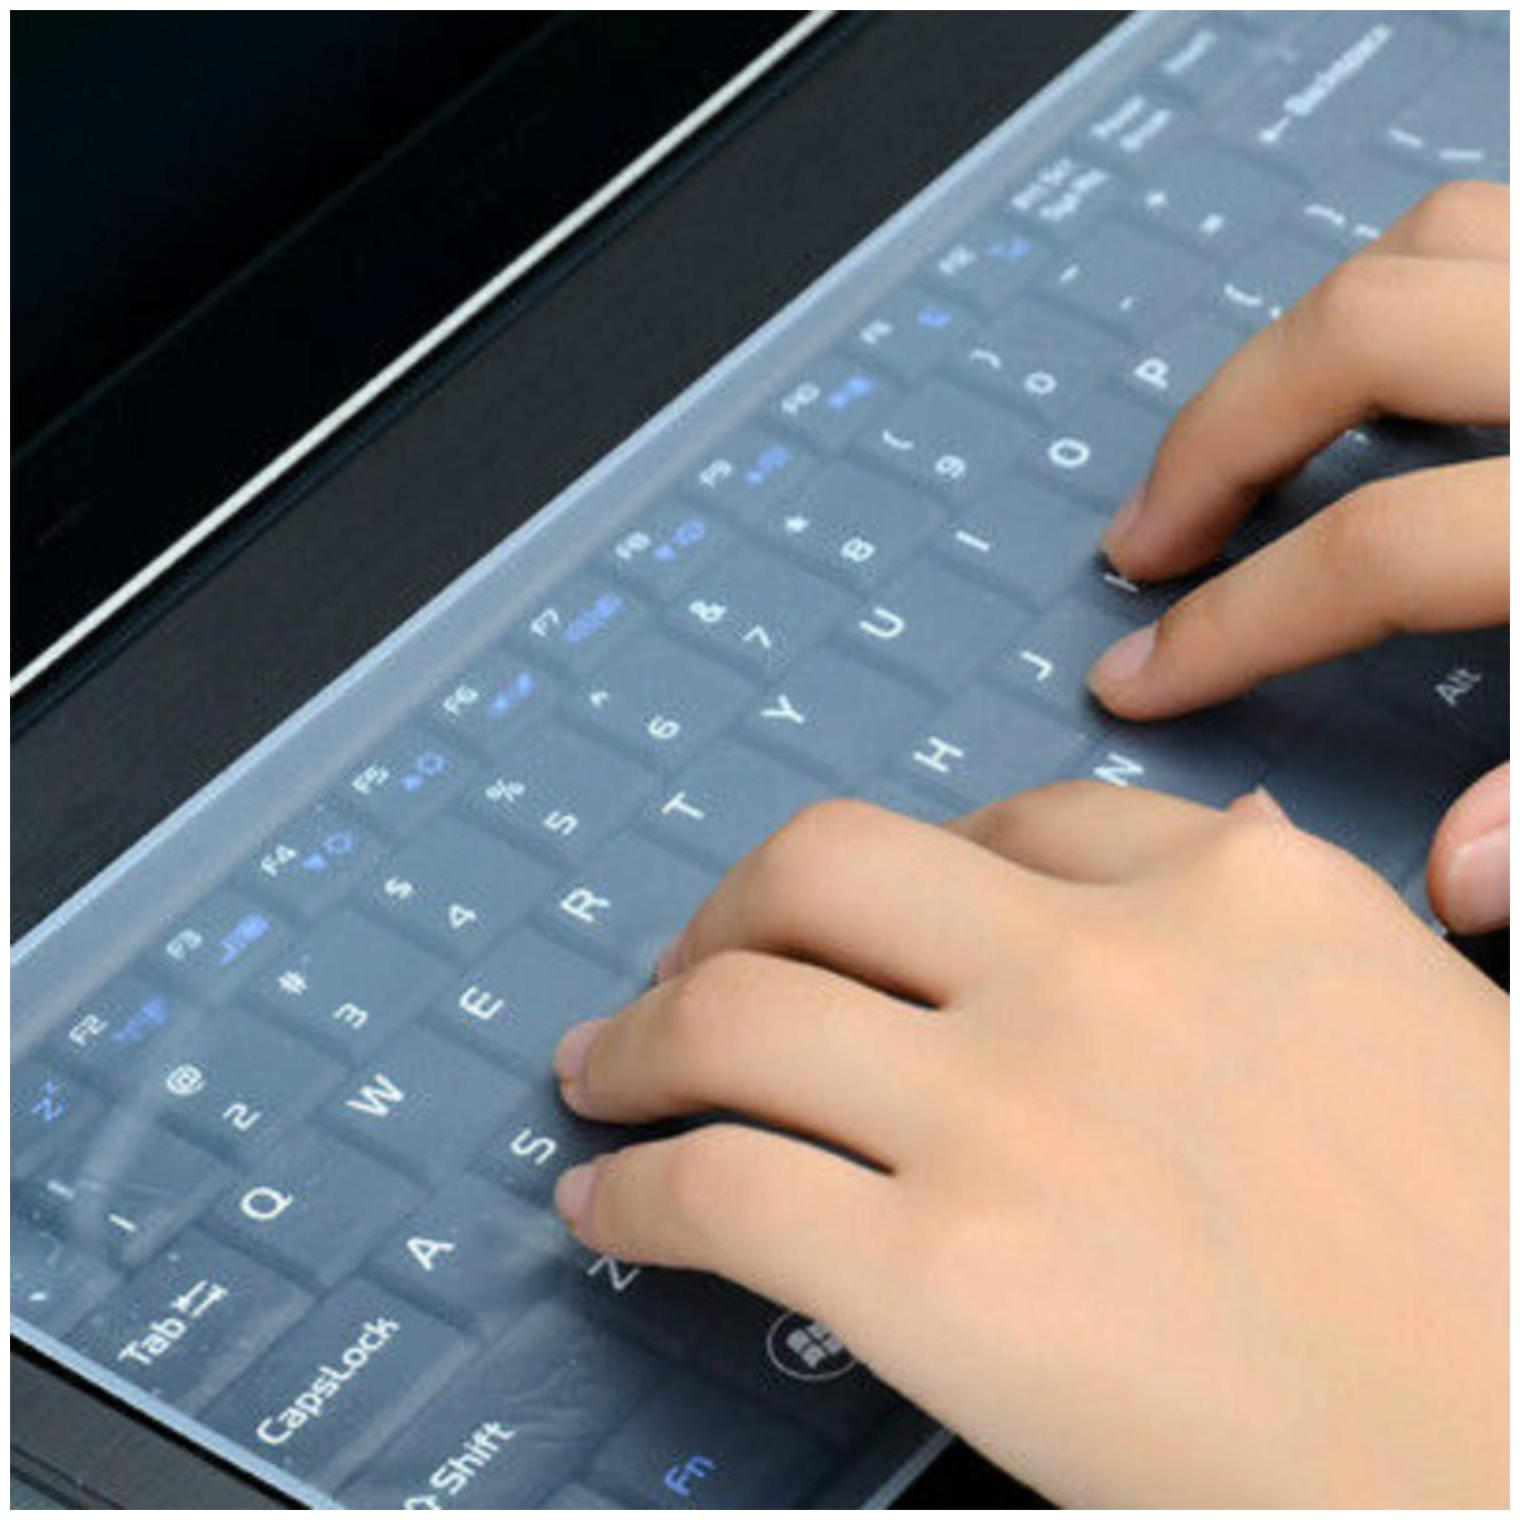 FEDUS Universal laptop keyboard protector skin, laptop keyboard cover, laptop keyboard protector skin 14 inch, laptop keyboard silicon cover, laptop